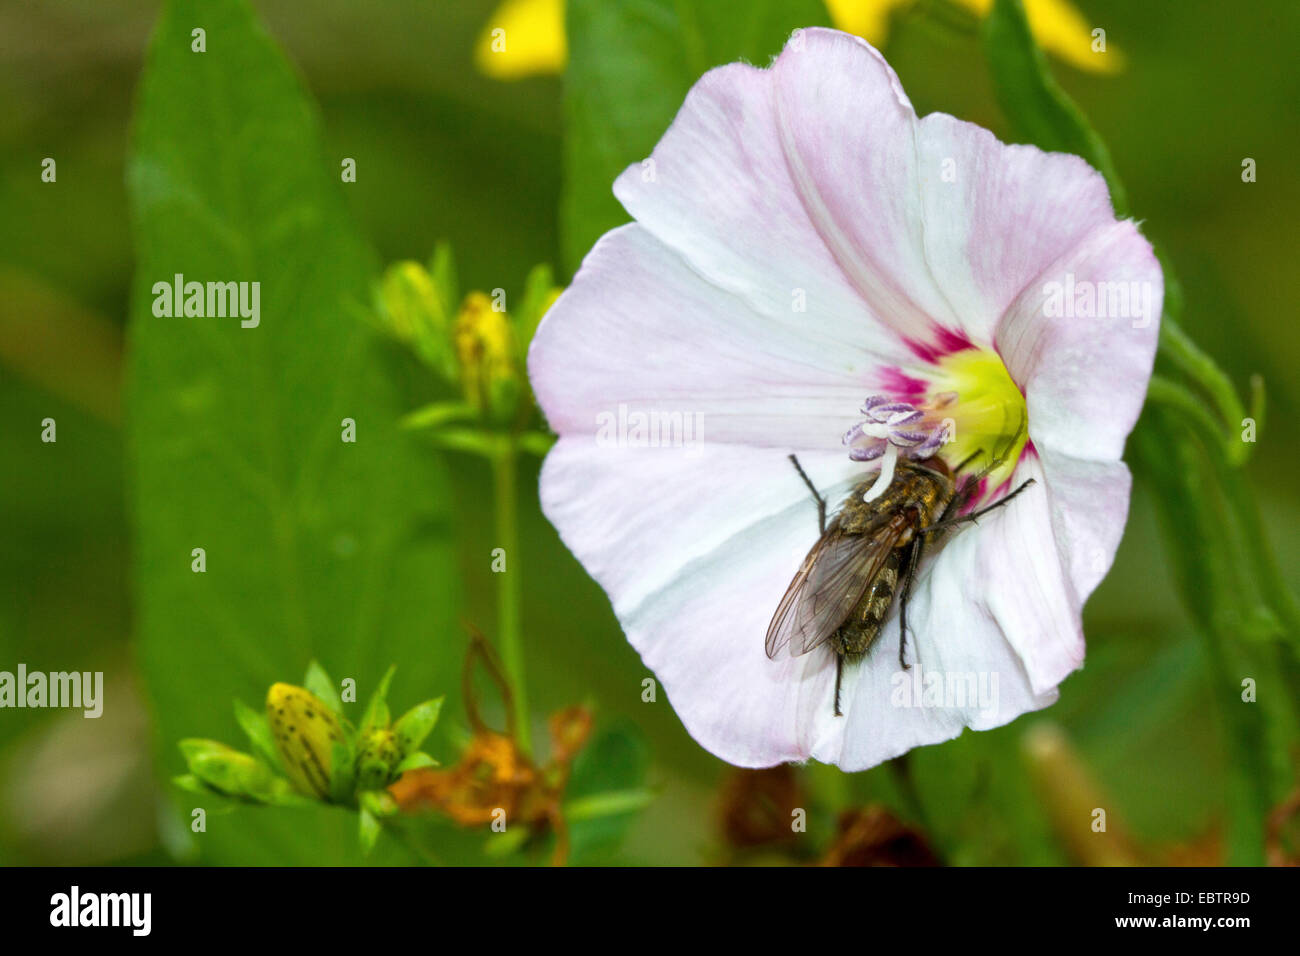 field bindweed, field morning-glory, small bindweed (Convolvulus arvensis), blossom with fly for pollination, Germany, - Stock Image